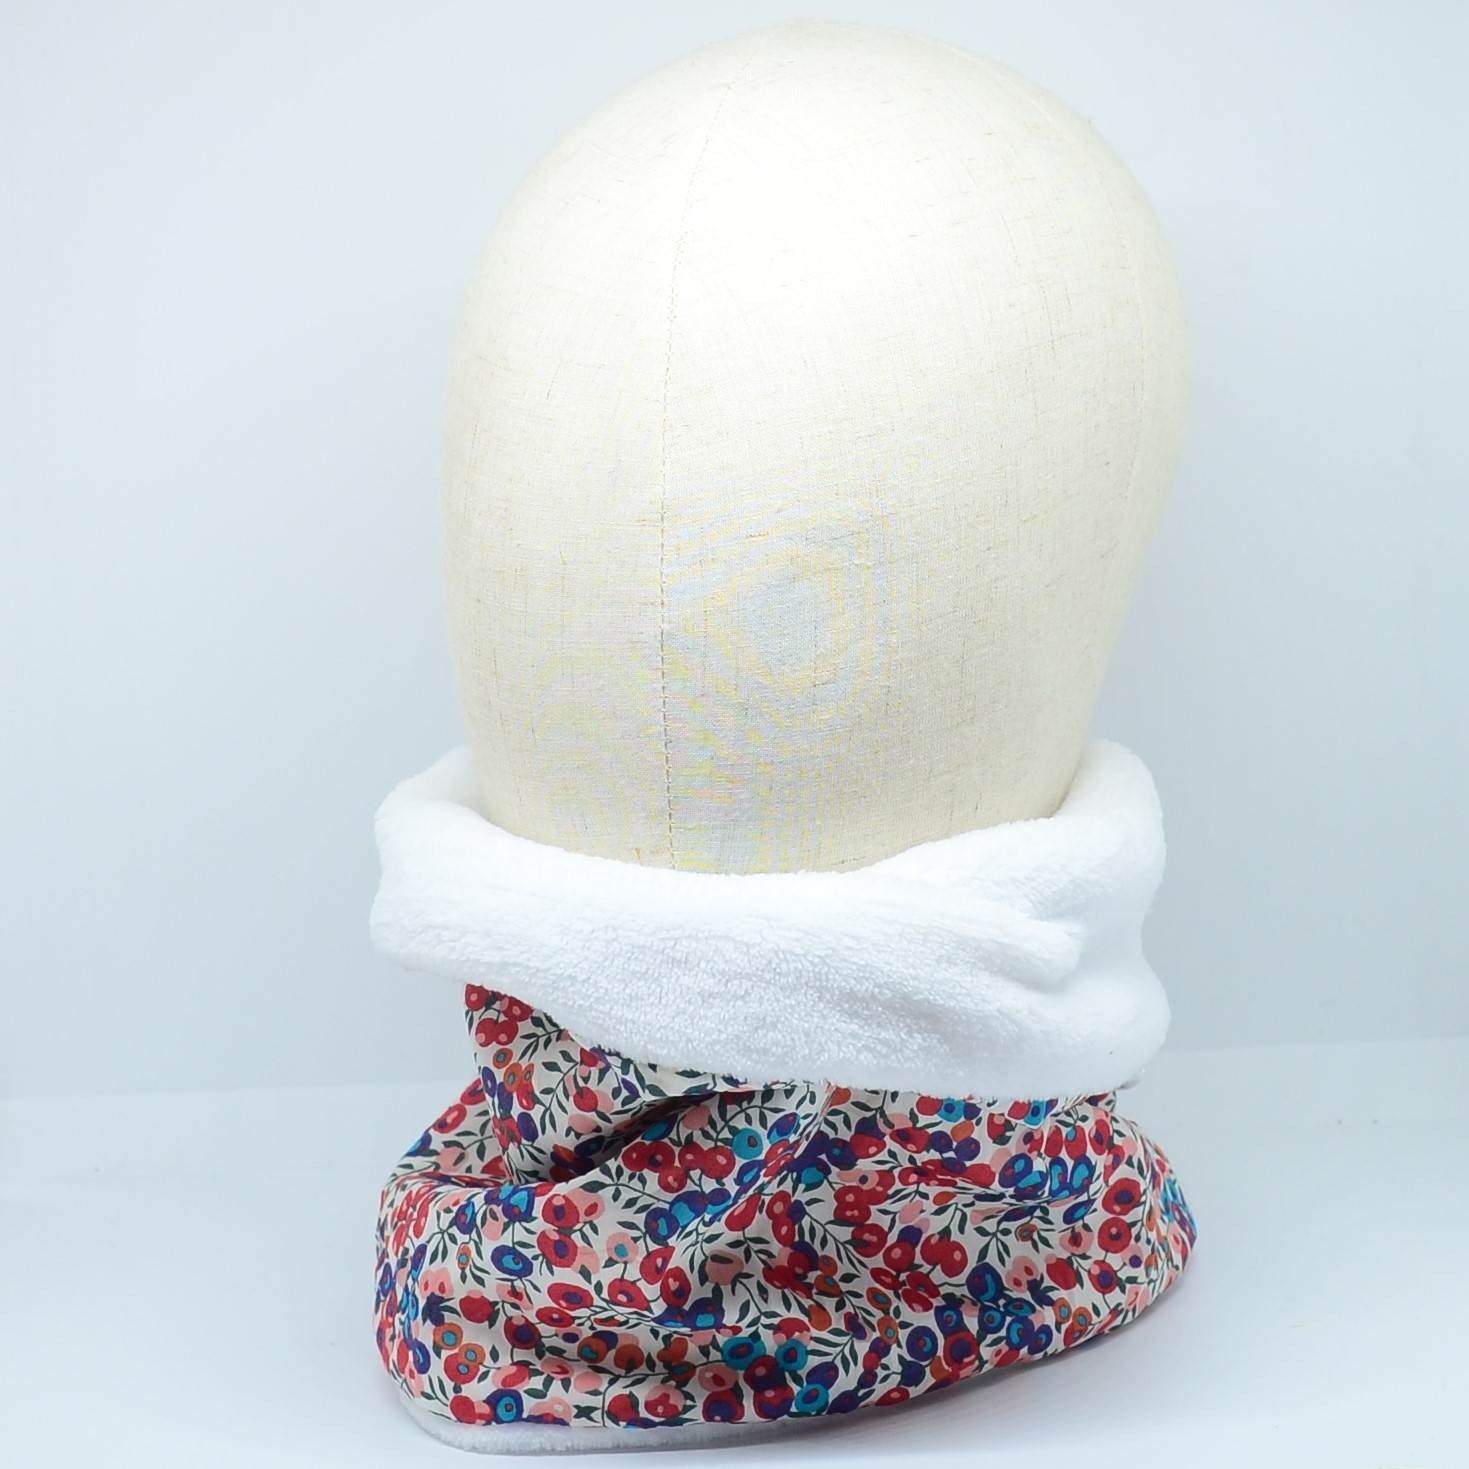 Snood tour de cou Liberty of London Wiltshire rouge et bleu doudou blanc--9995669219171